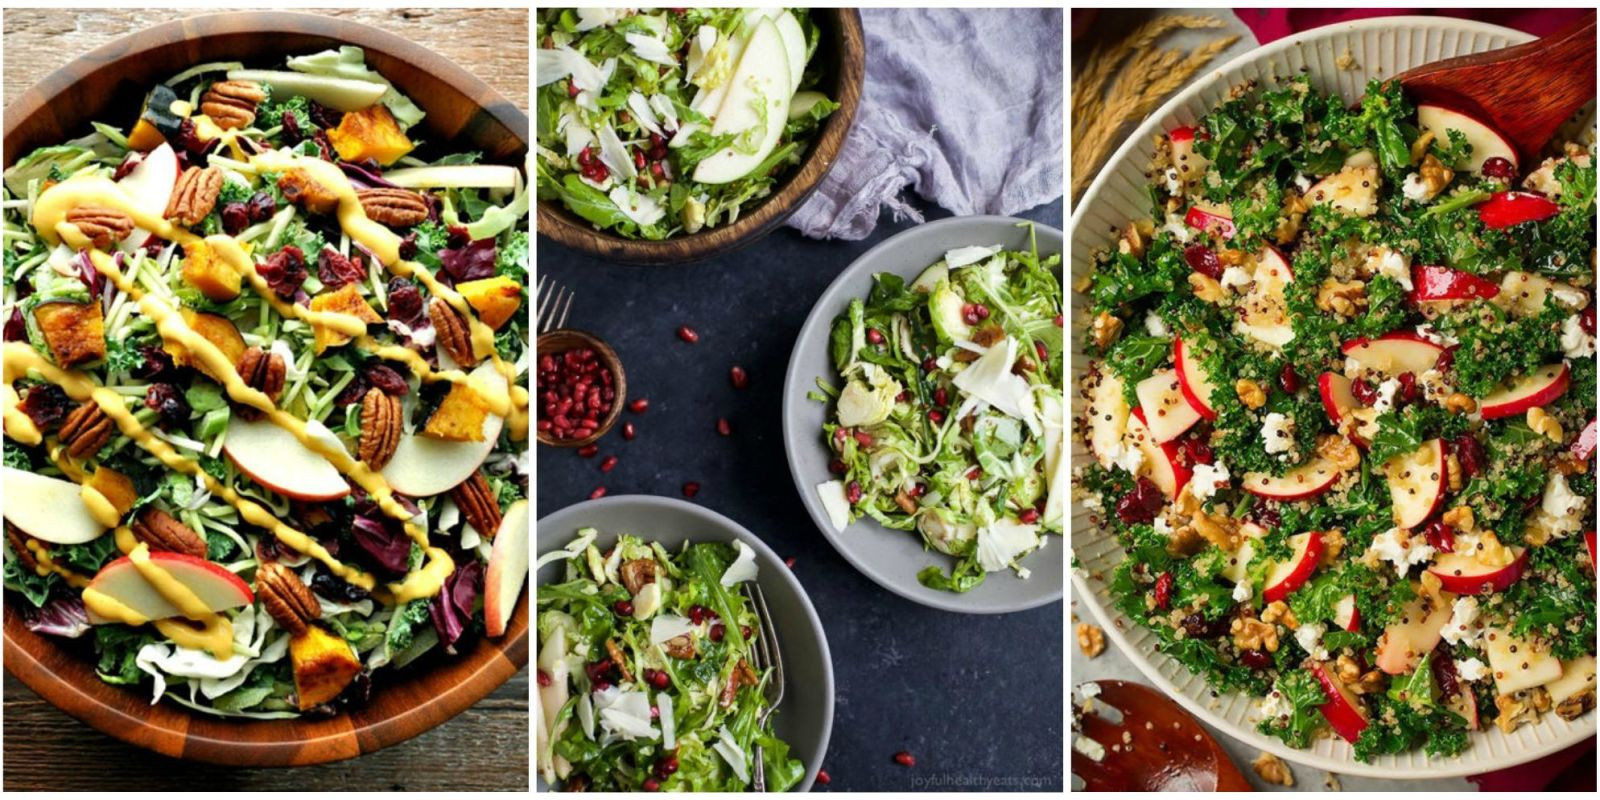 Thanksgiving Side Salads  11 Easy Thanksgiving Salad Recipes Best Side Salads for